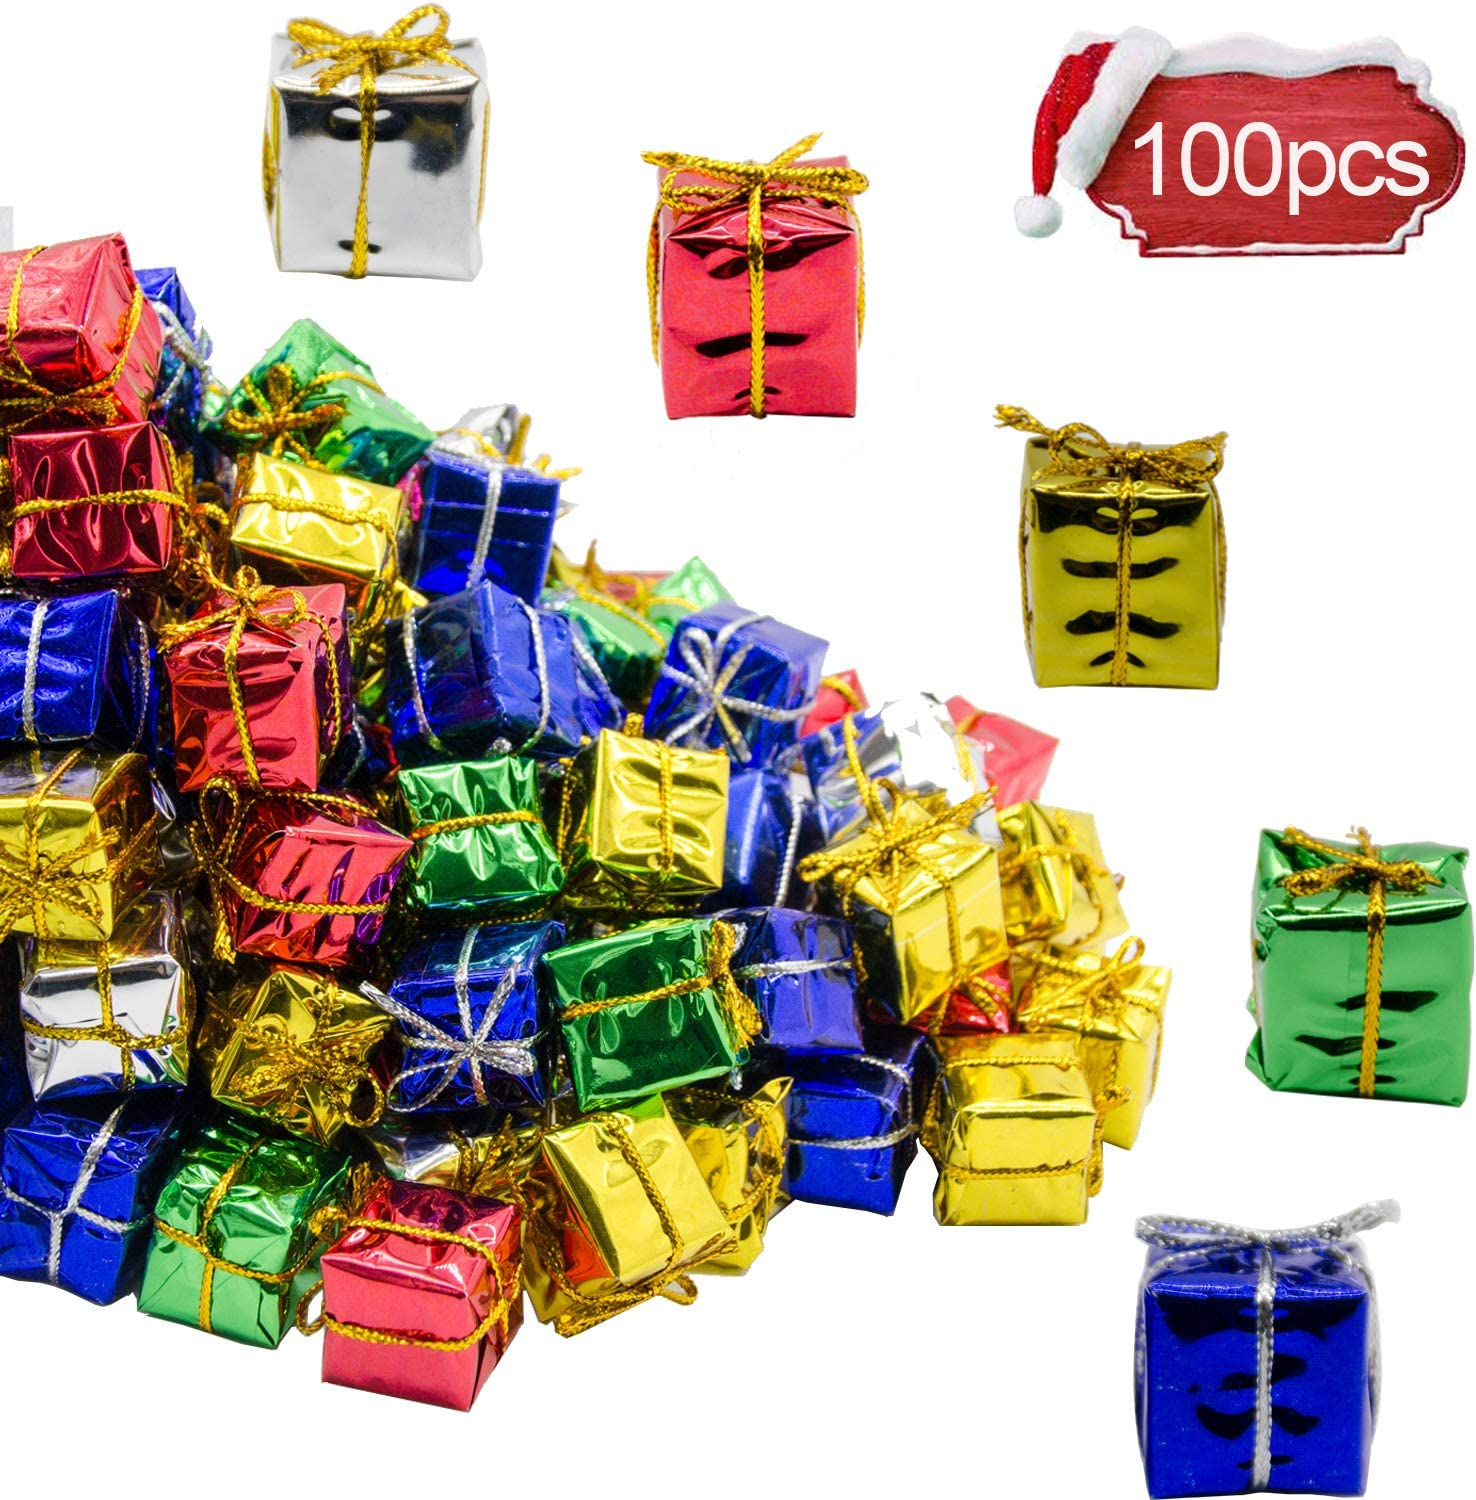 Alpurple 100 PCS Shiny Mini Boxes Ornaments-Assorted Colors Metallic Foil Wrapped Ornaments Decoration Boxes for Christmas Tree Hanging Decorations